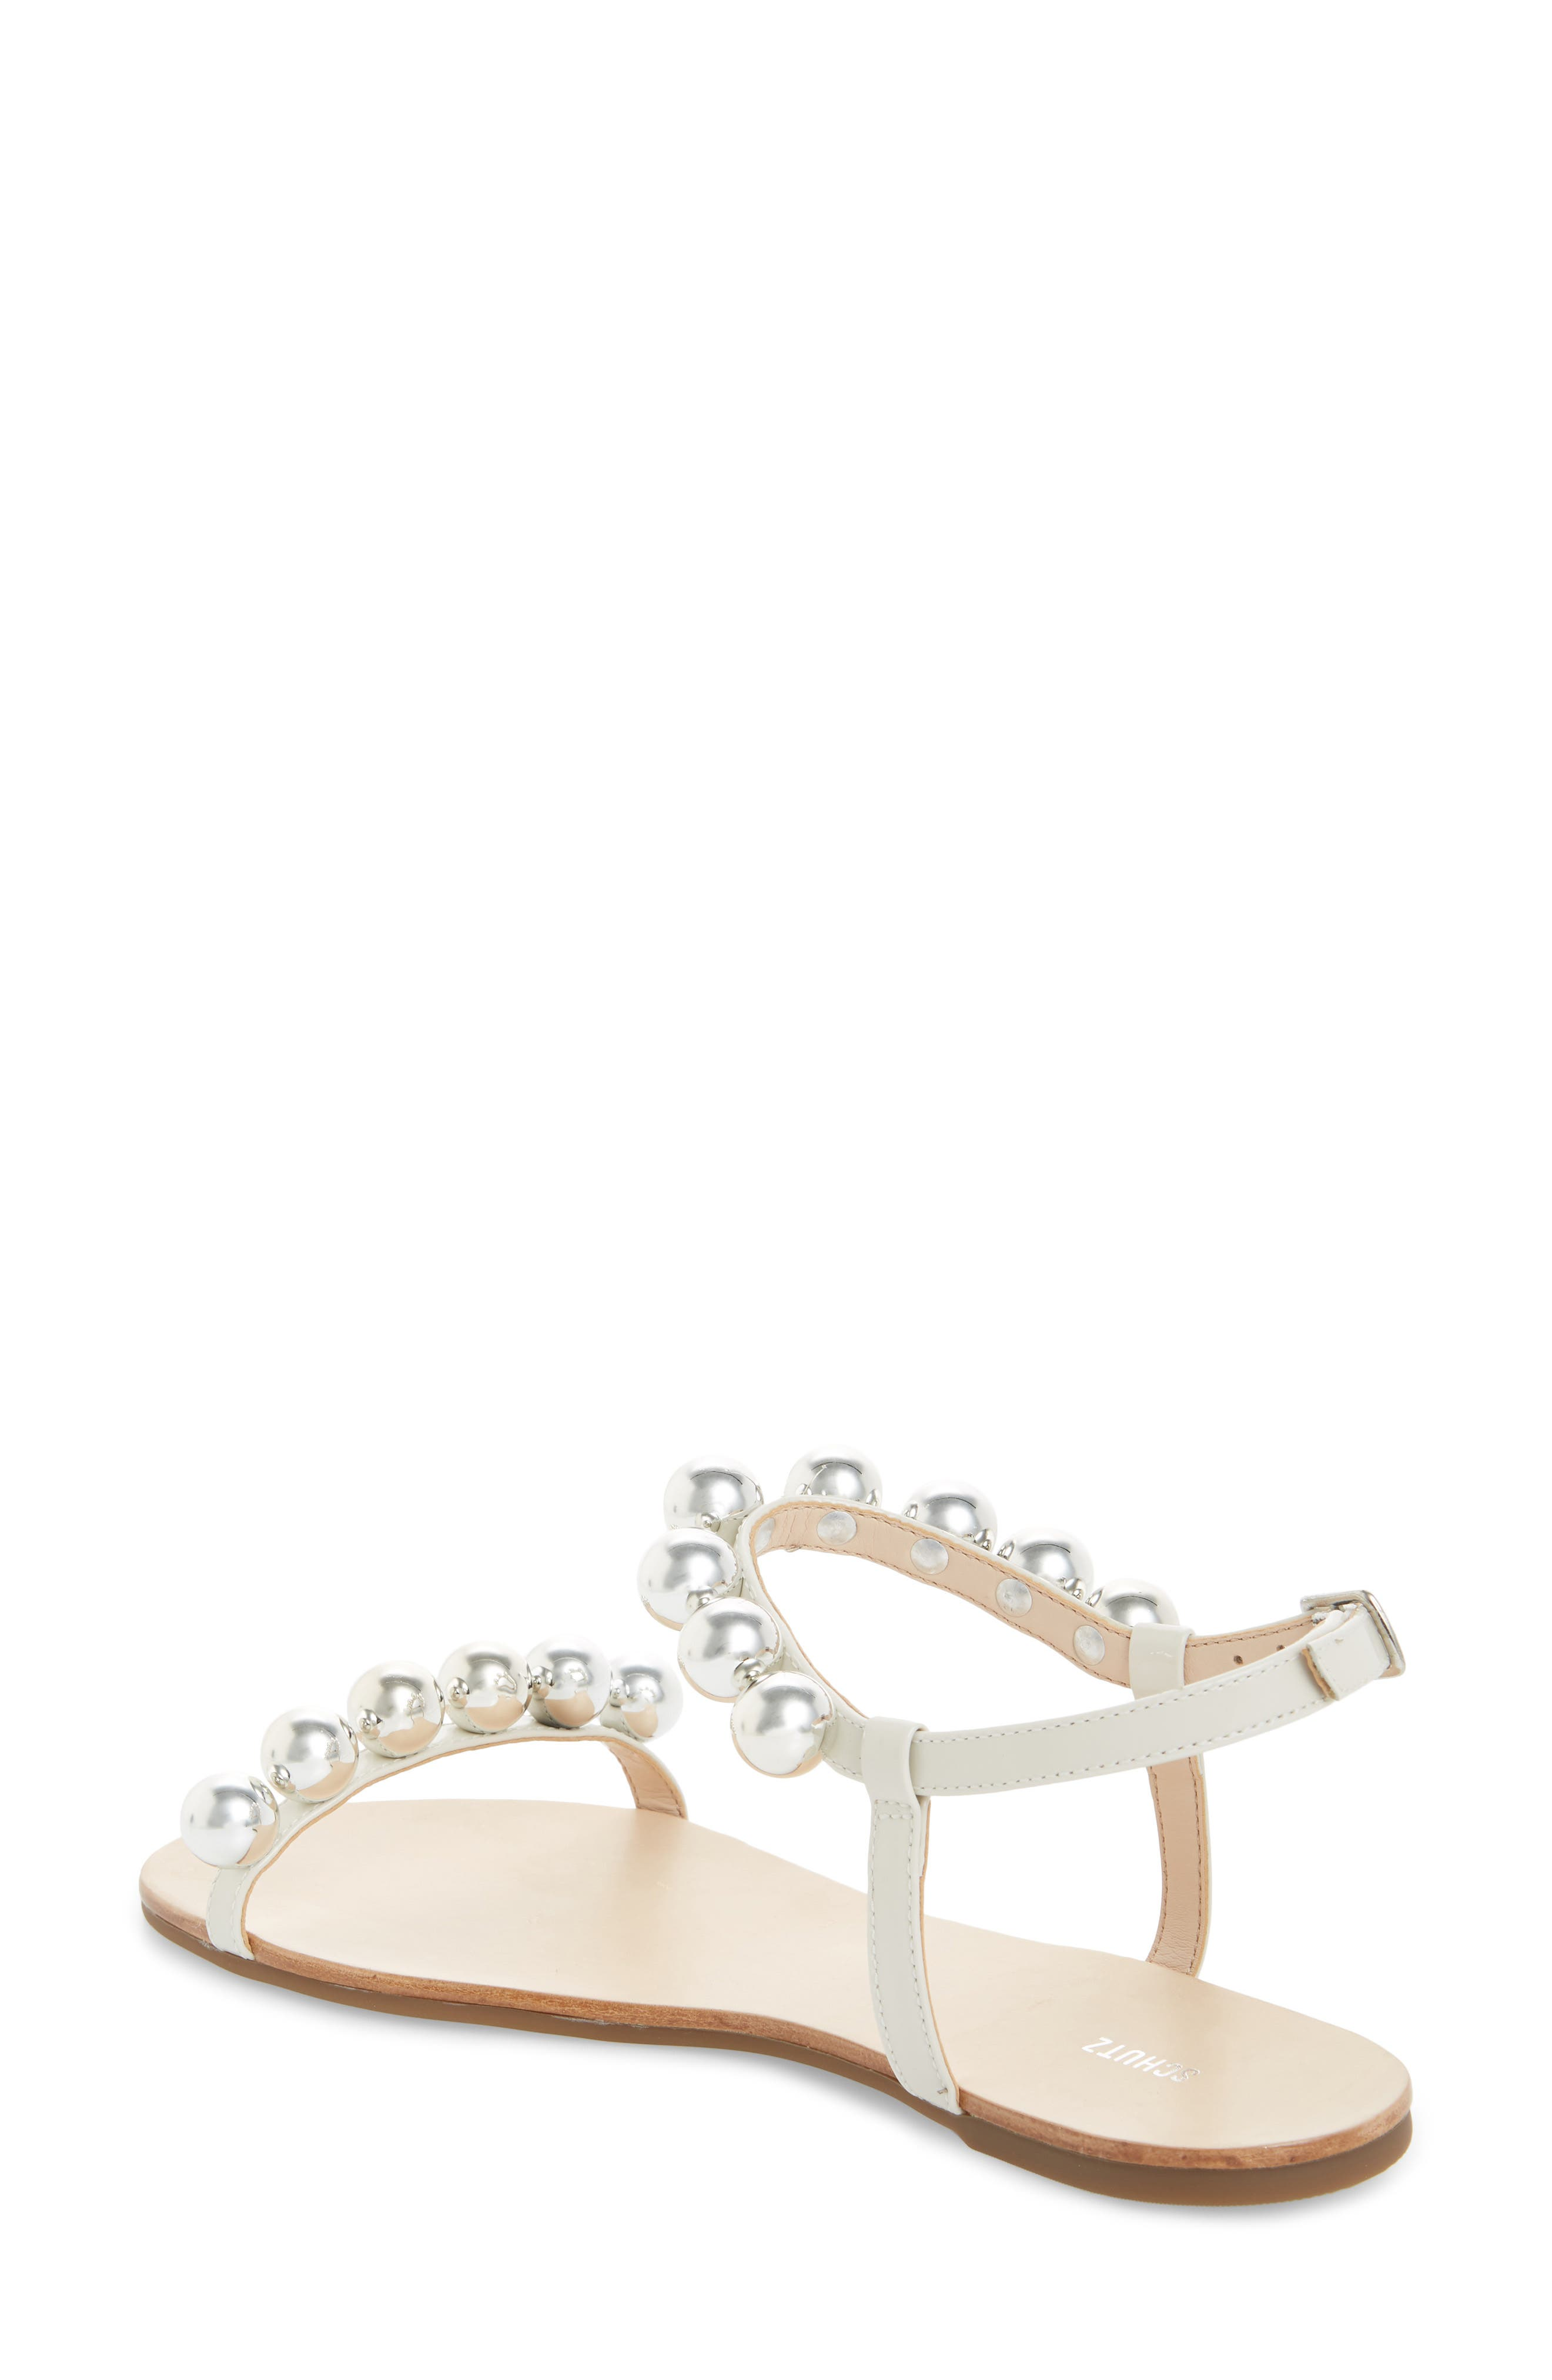 Hebe Ankle Strap Sandal,                             Alternate thumbnail 2, color,                             PEARL LEATHER